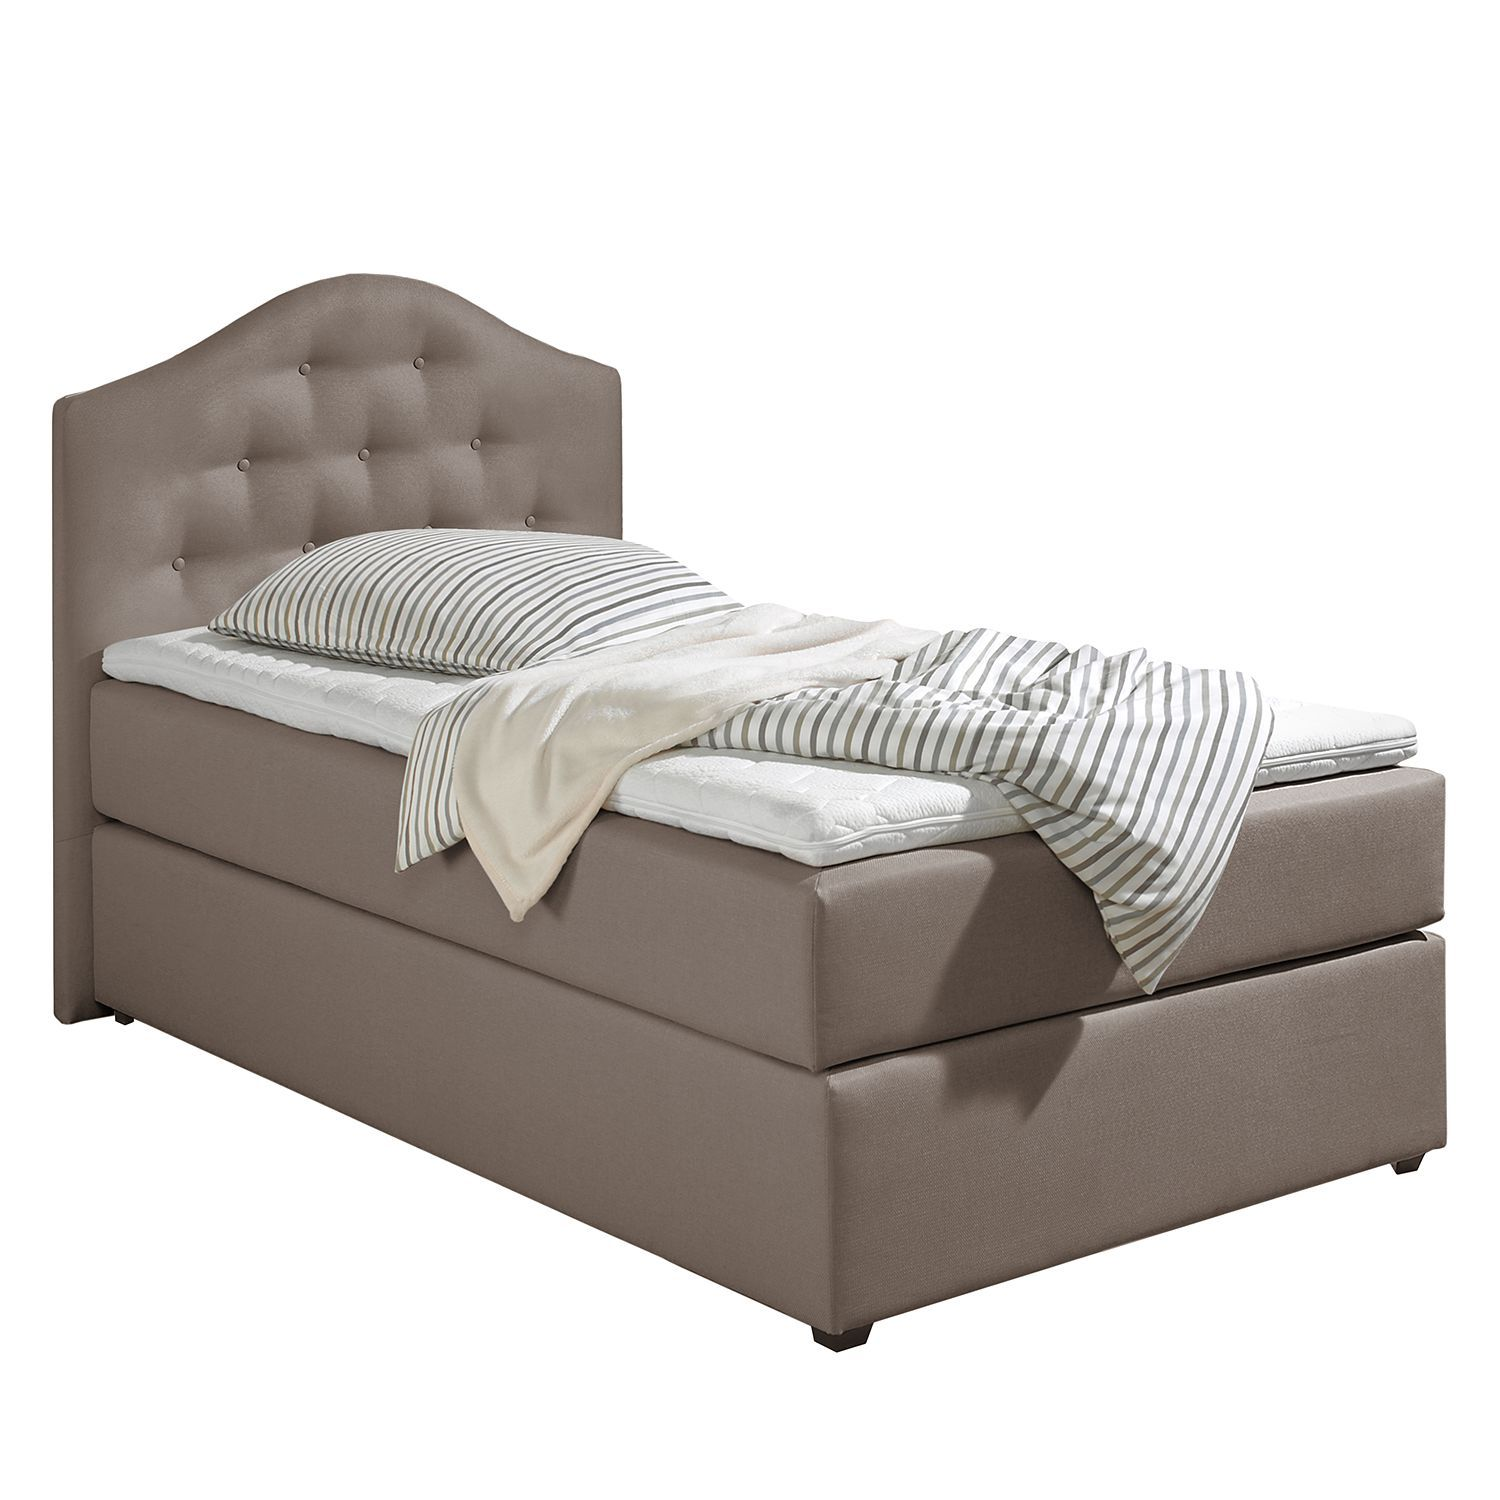 Boxspringbett Mit Motor 180x200 Boxspringbett Ansmark Products Bed Frame Bed Bed Furniture